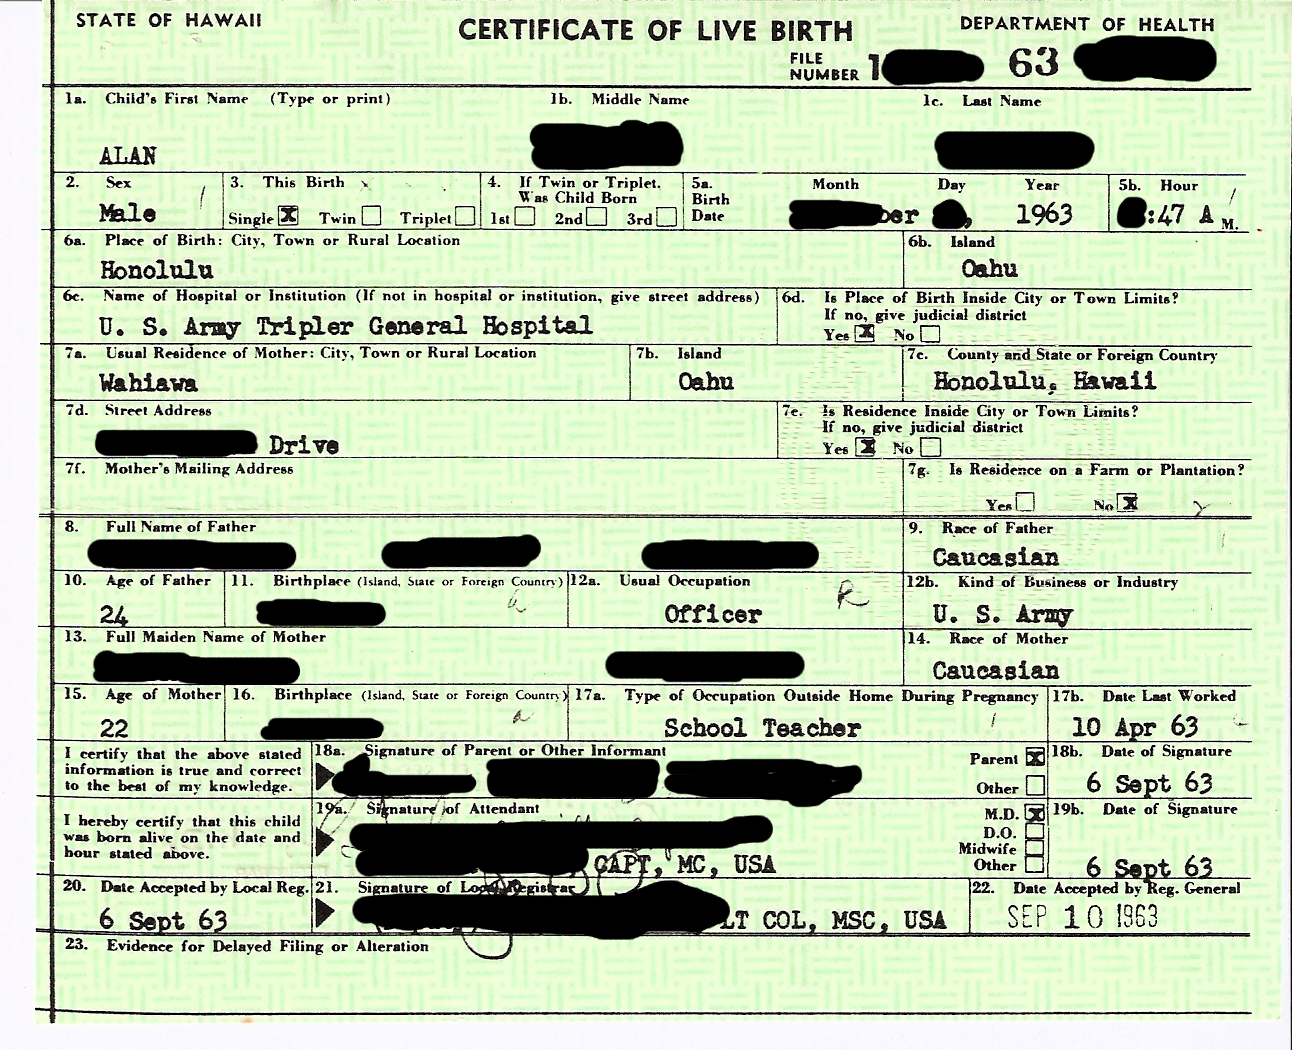 Earth To Birthers The Facts About Obamas Birth Certificate The